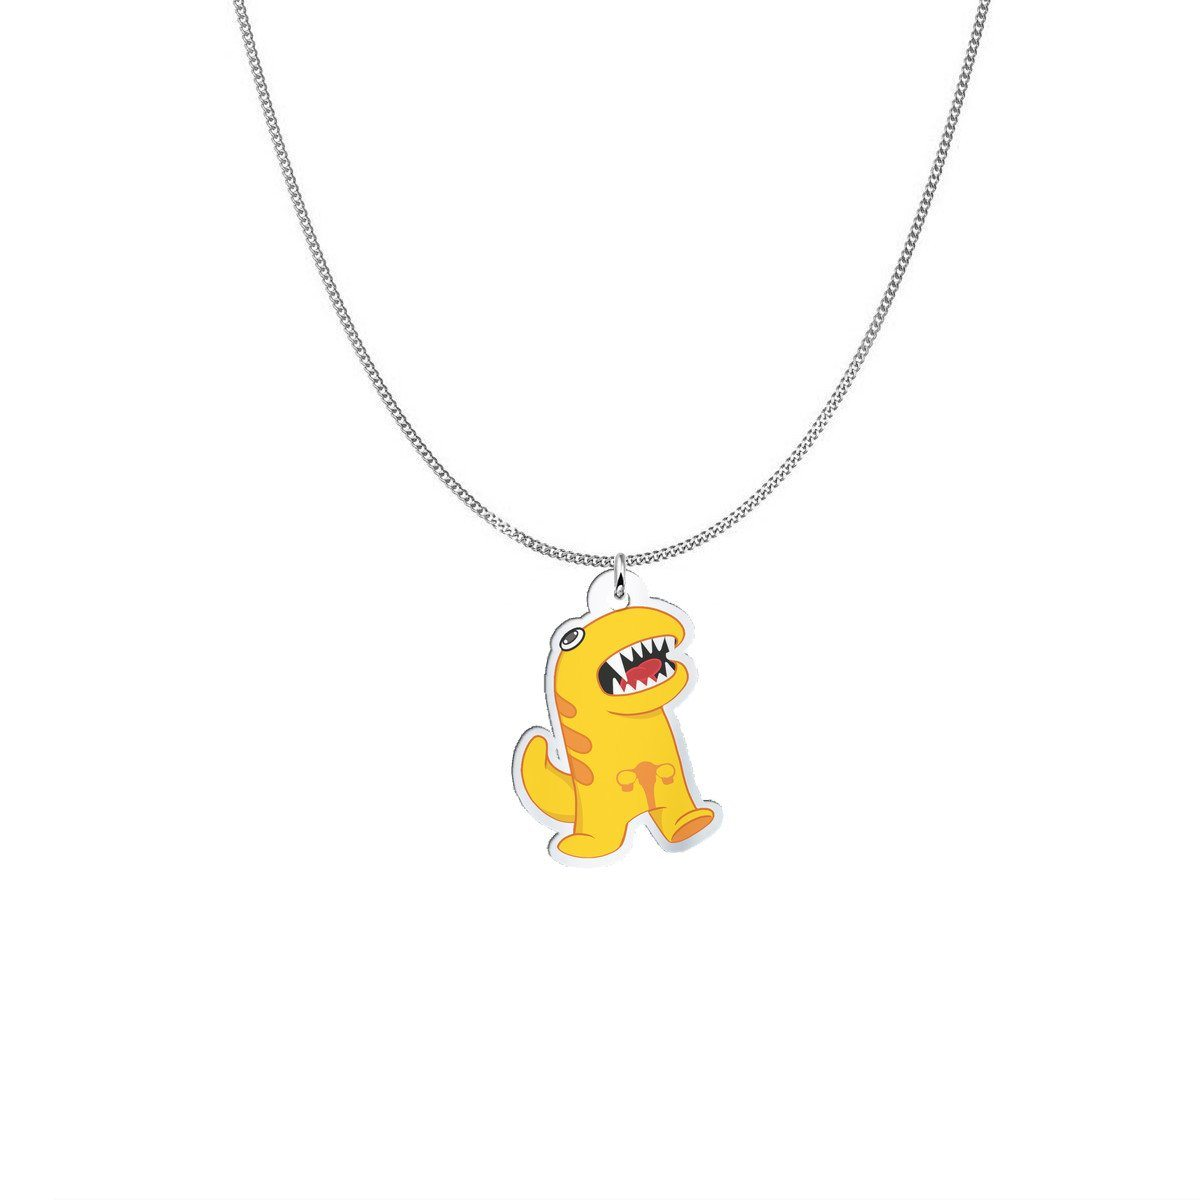 Pendant - Sis The Endometriosis Monster Silver Necklace